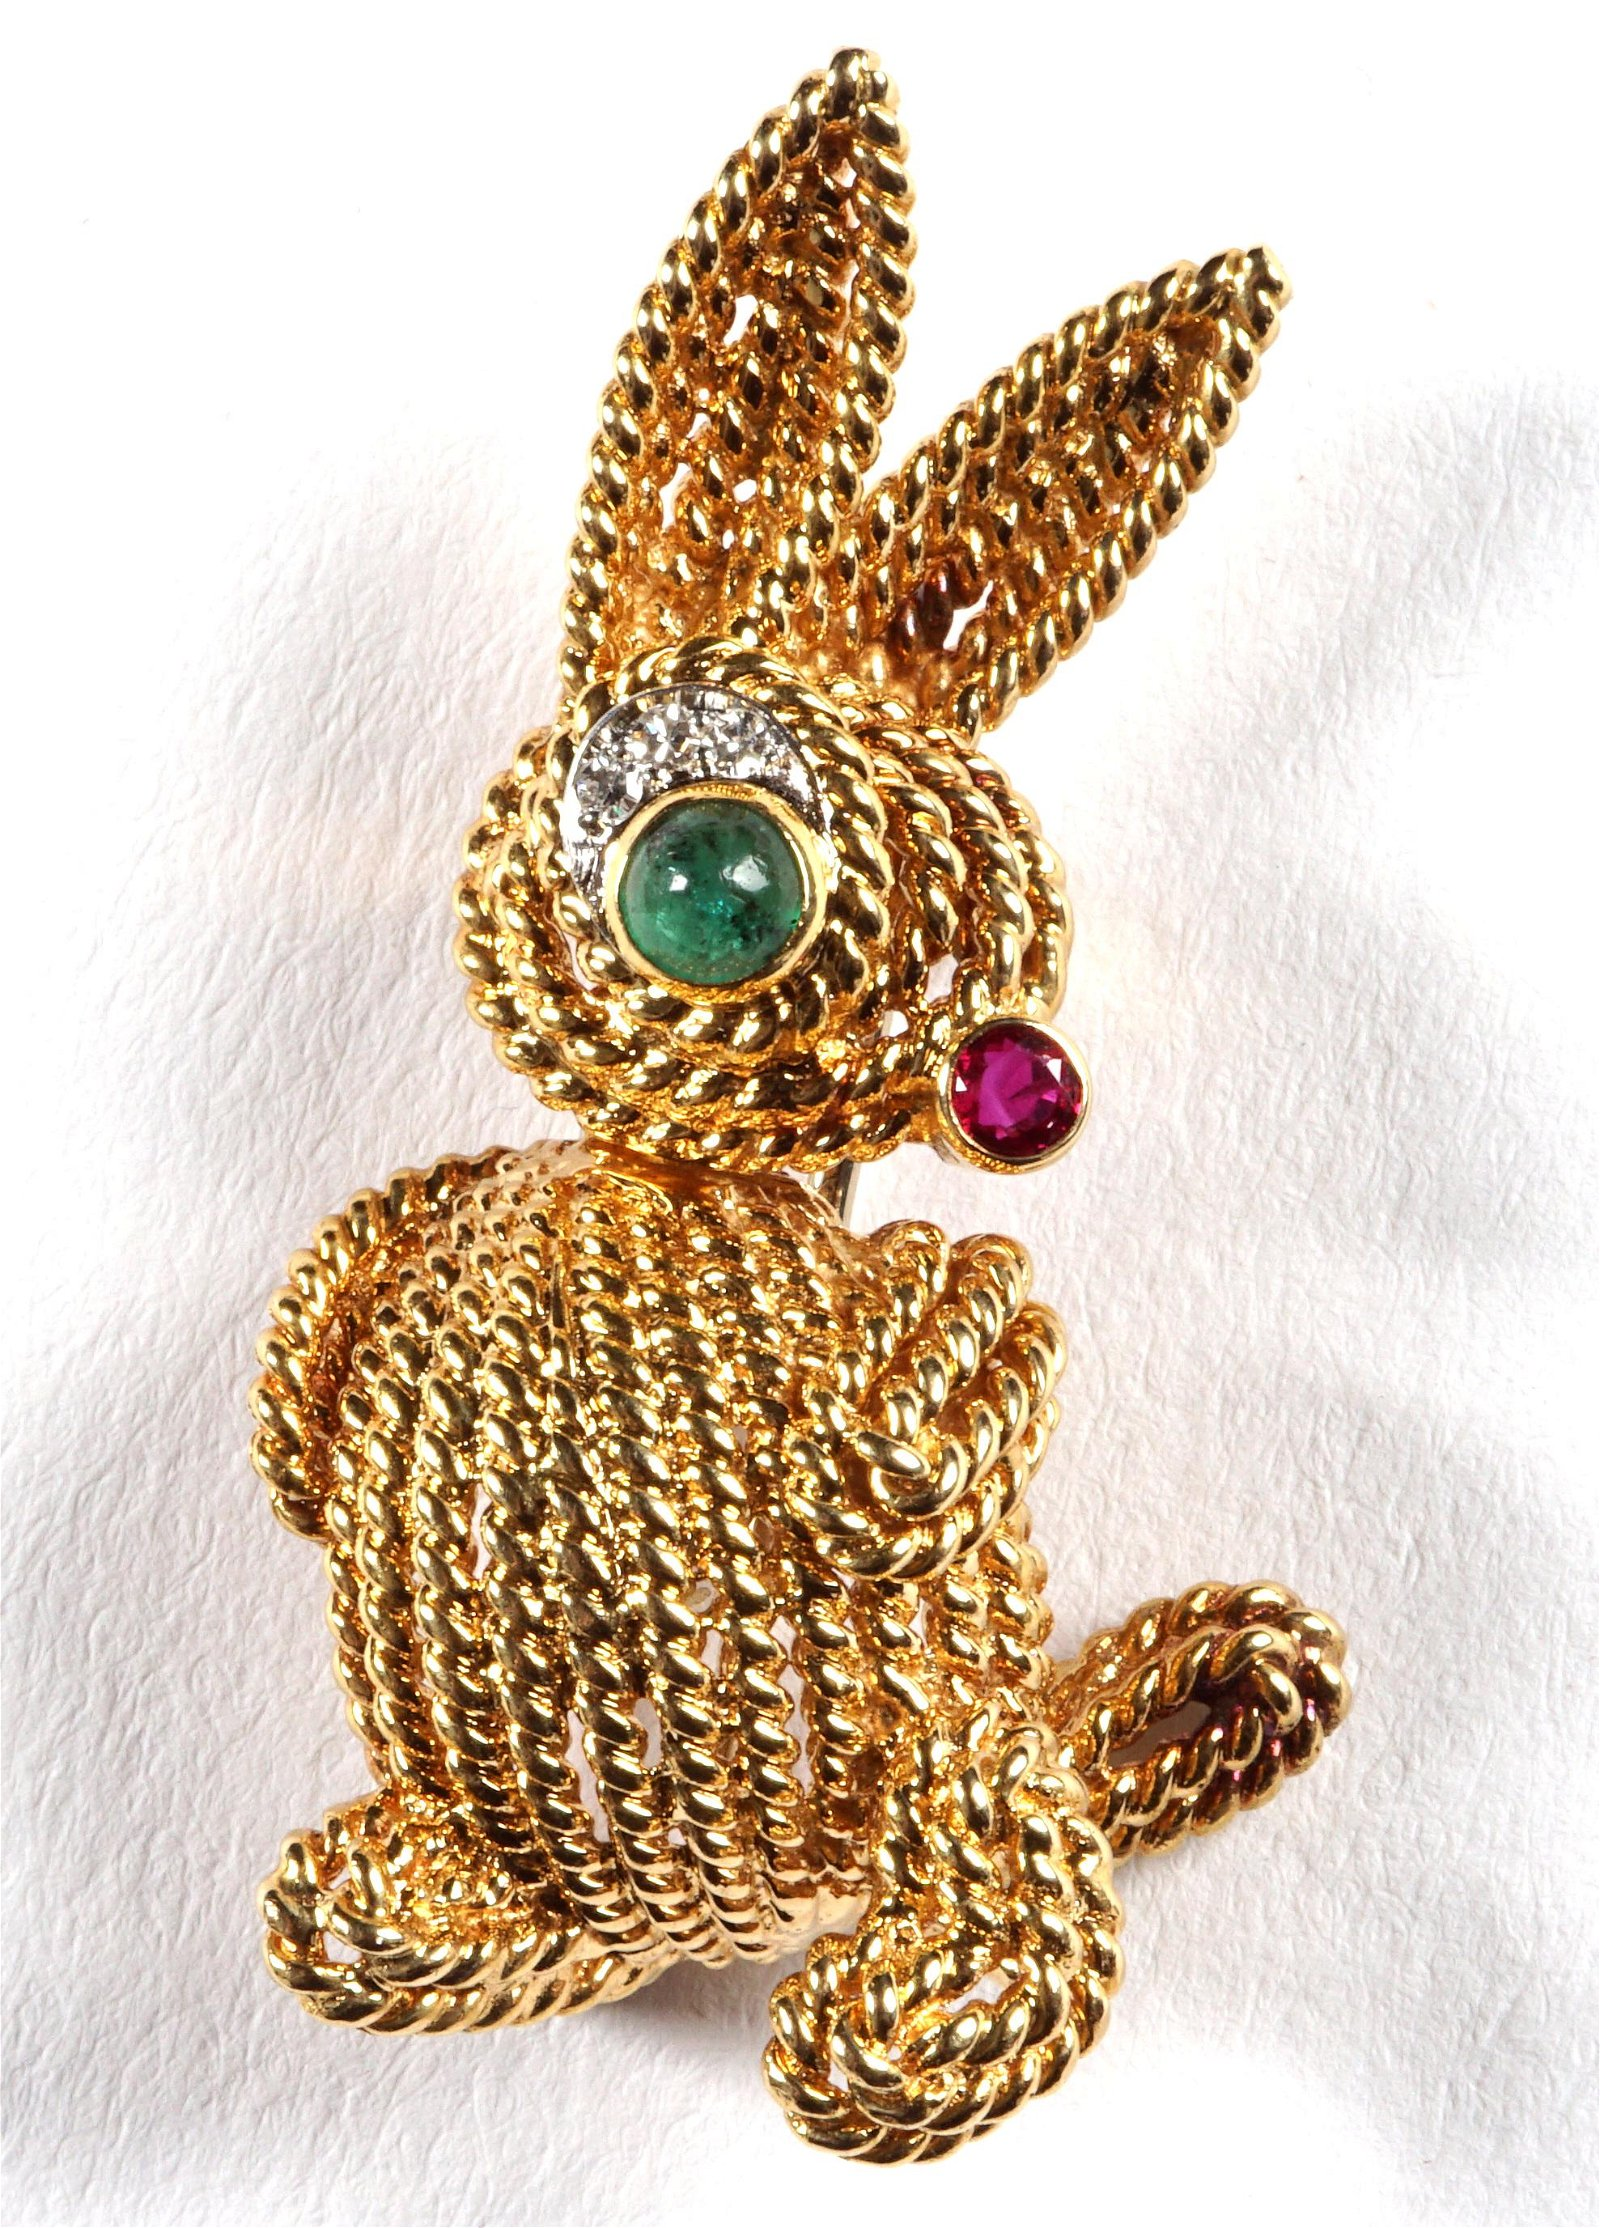 18k Gold Van Cleef & Arpels Rabbit Brooch